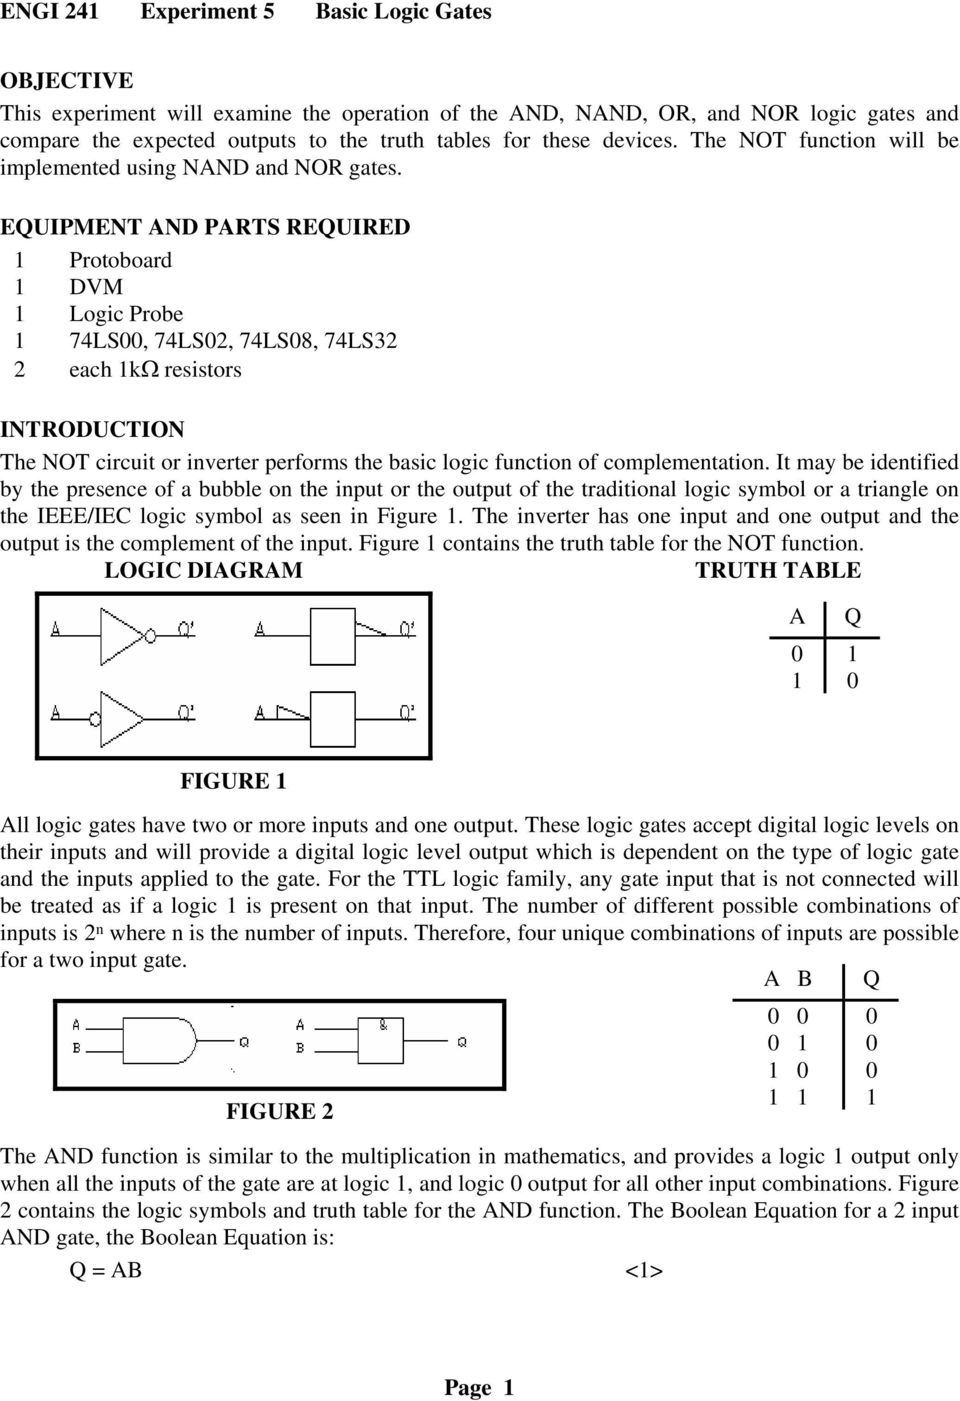 Engi 241 Experiment 5 Basic Logic Gates Pdf Circuit Diagram Complementary Ttl Inverter Euipment And Parts Reuired Protoboard Dvm Probe 74ls 74ls2 74ls8 74ls32 2